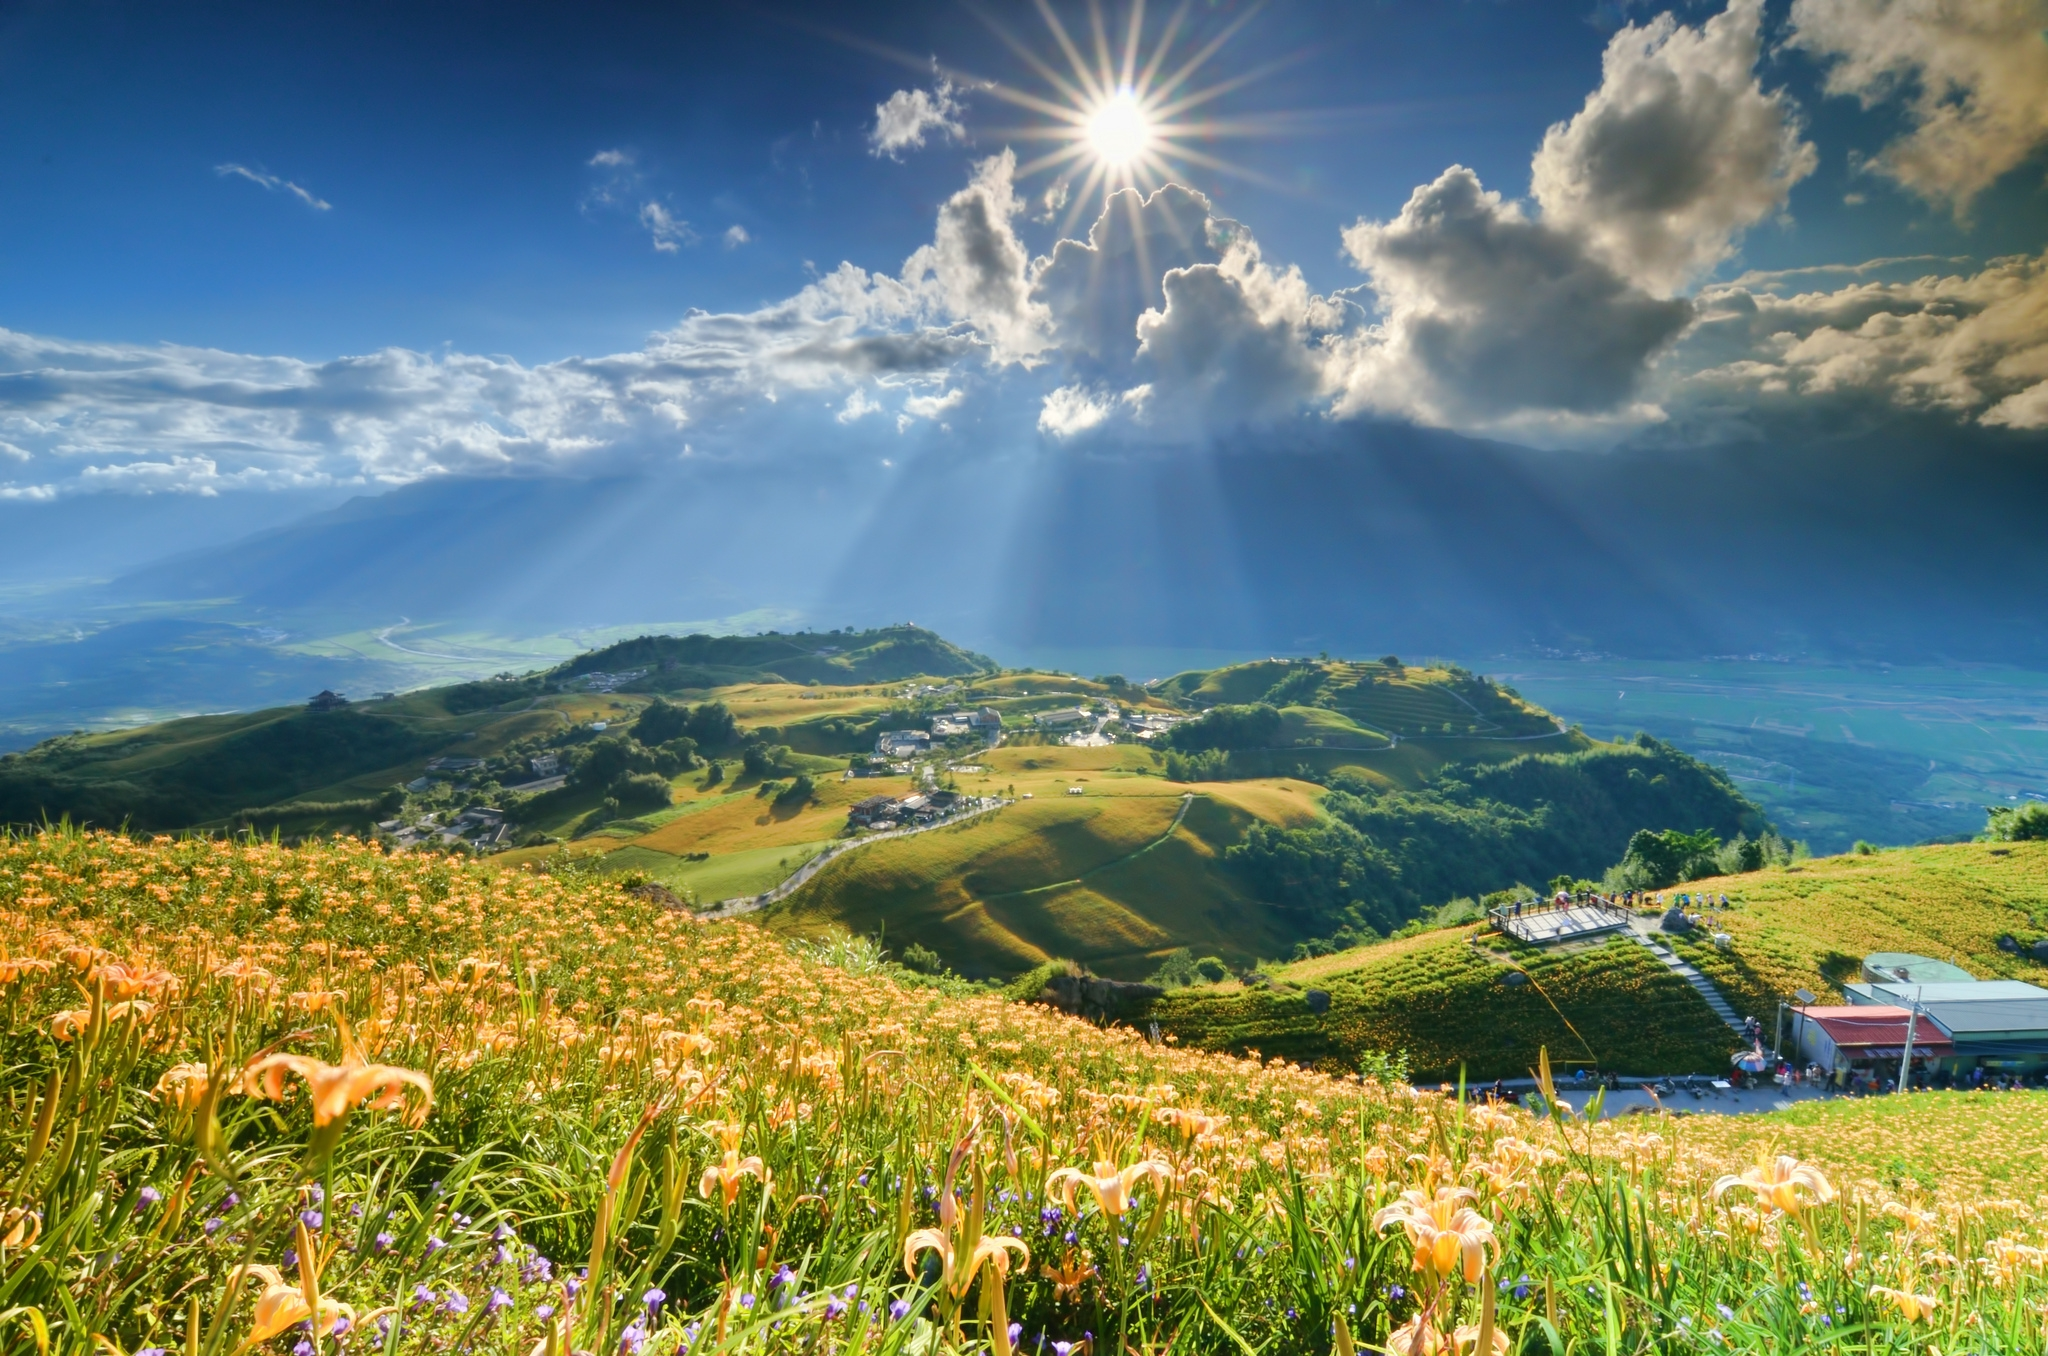 66552 download wallpaper Nature, Flowers, Mountains, Sun, Clouds, Lilies, Beams, Rays, Slope screensavers and pictures for free